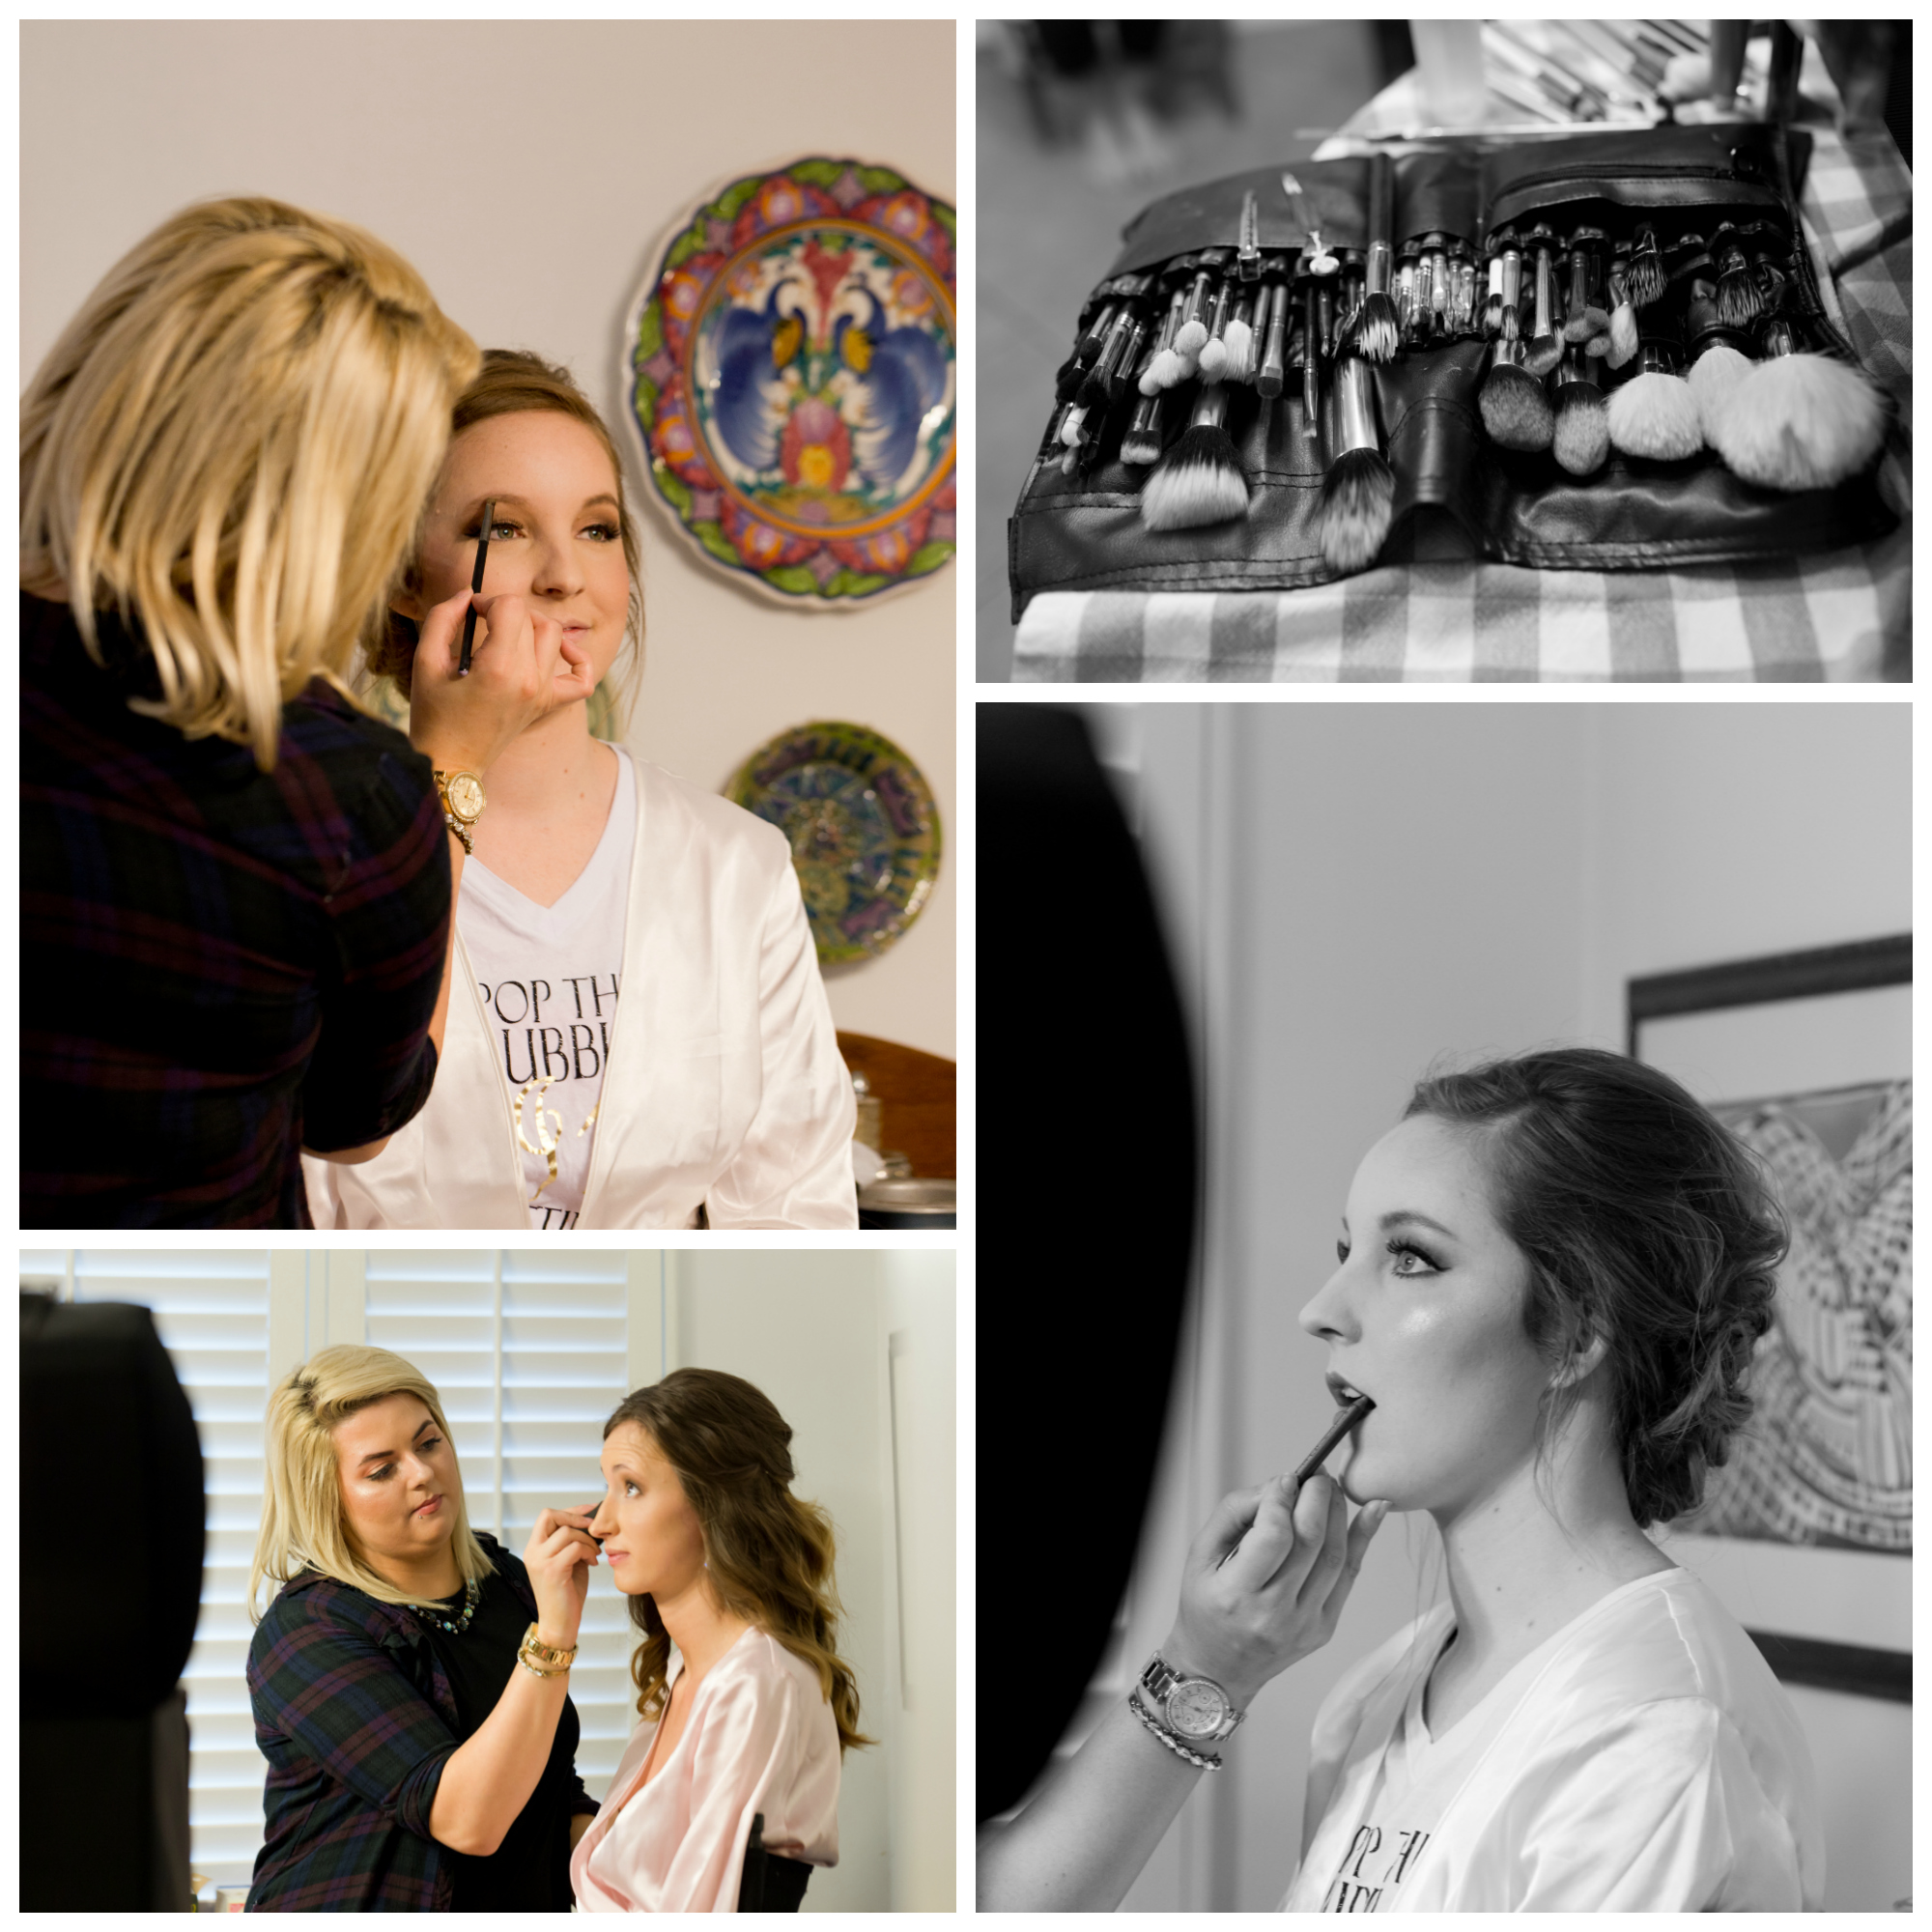 makeup artist with bride and bridesmaid on wedding day